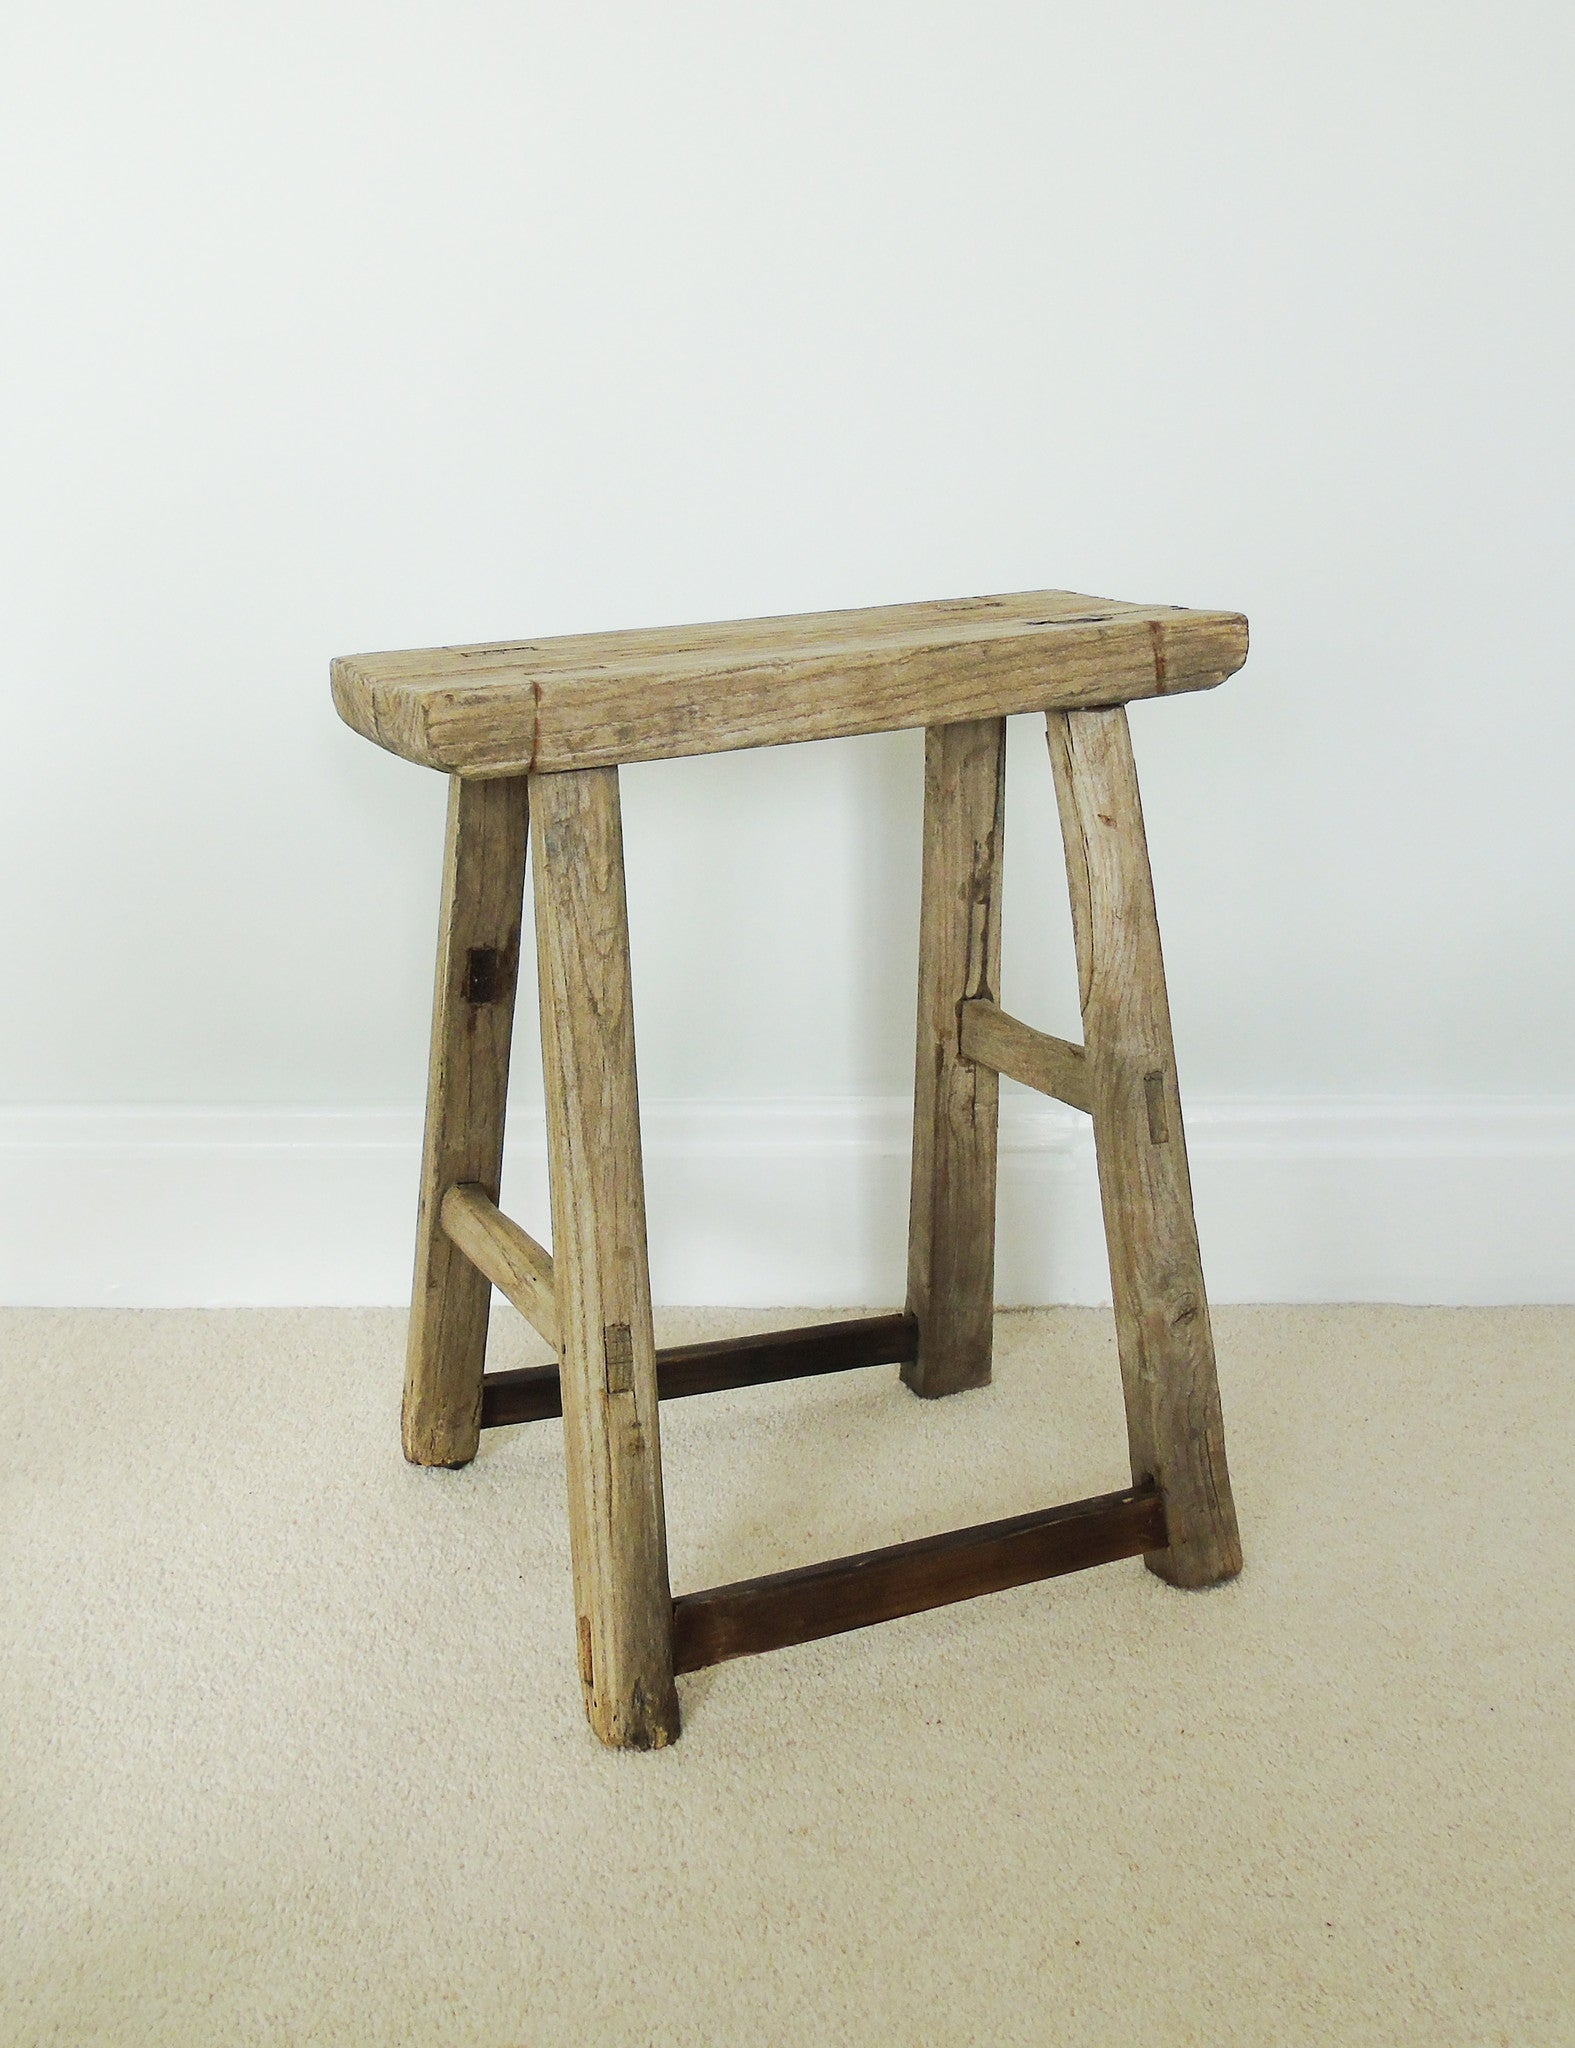 rustic stools id f master wooden stool french sale for at heart tripod shaped seating furniture